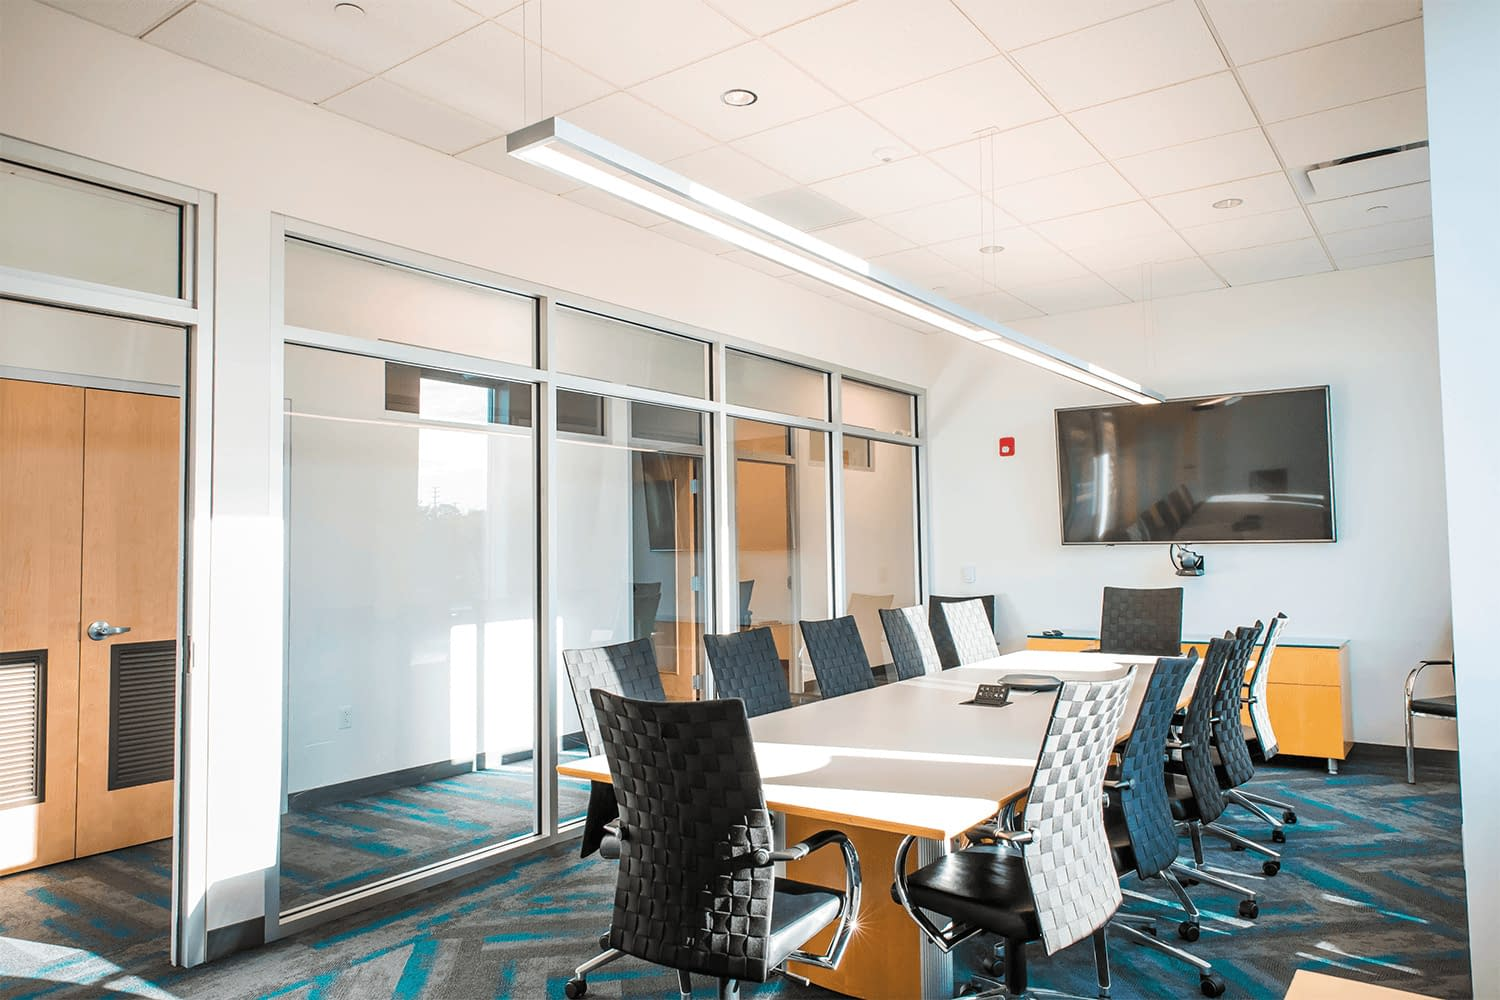 conference room with a TV display and a large table with chairs